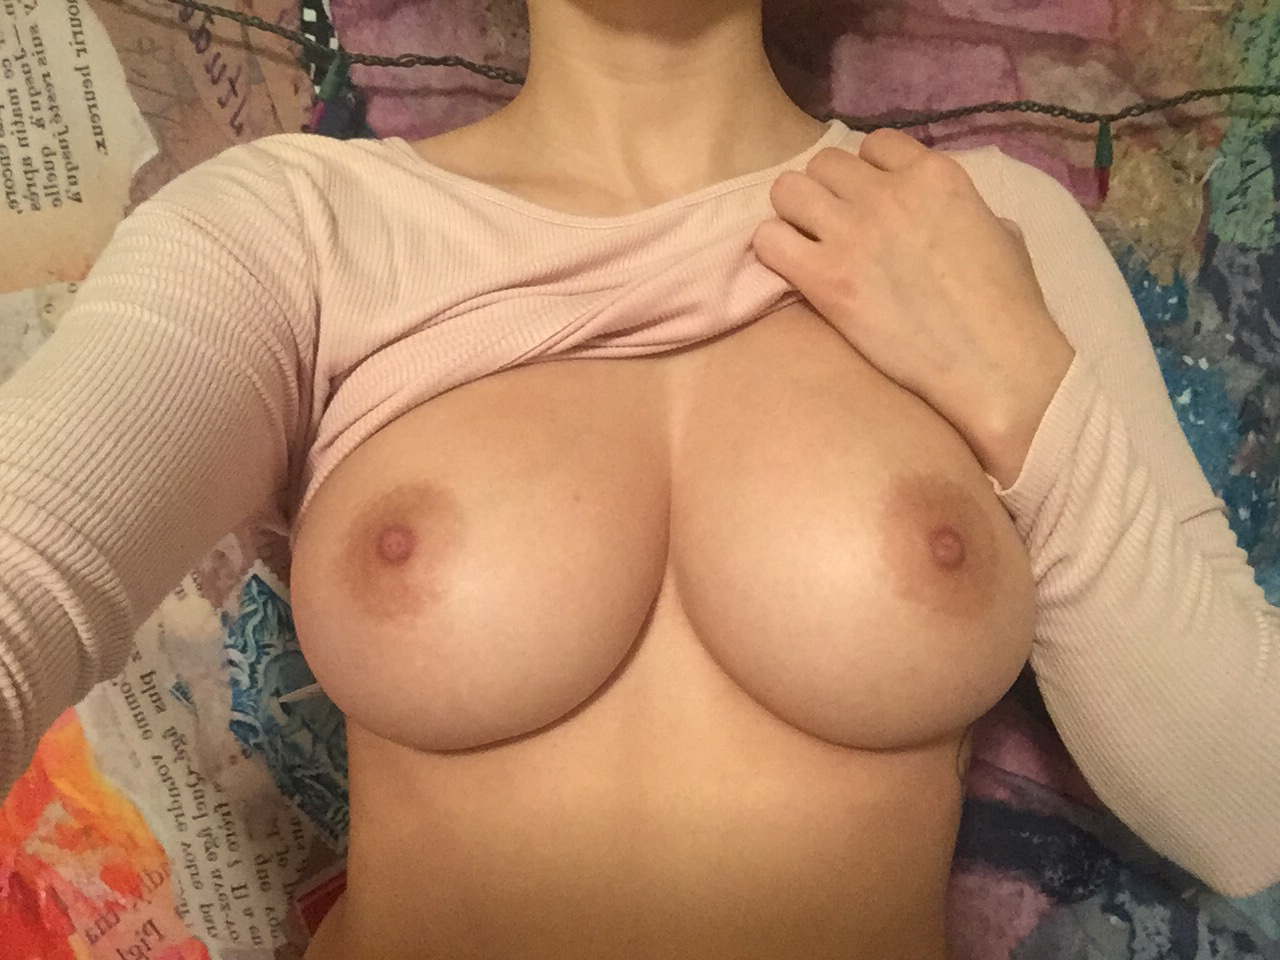 Full frontal nude of hot babe